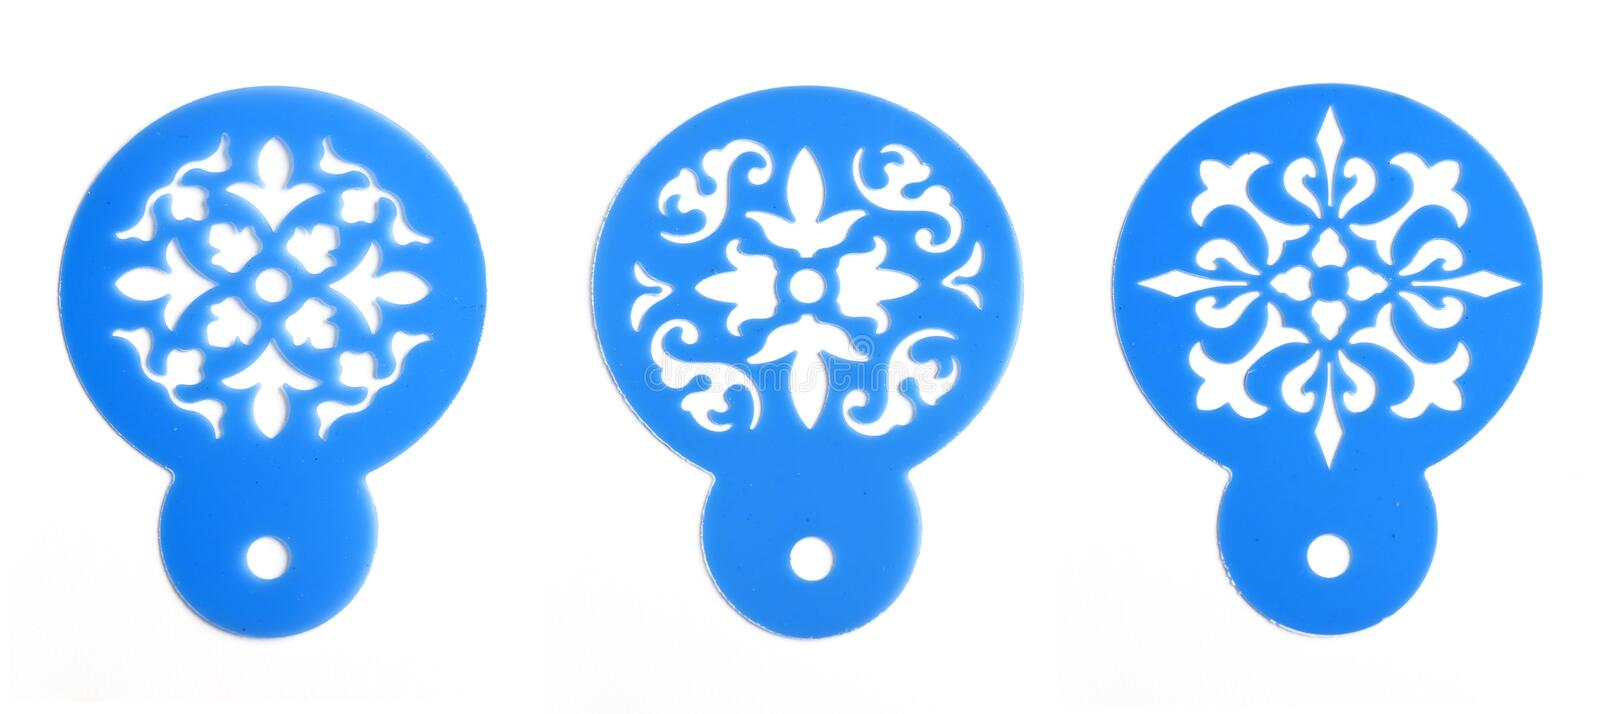 Download Stencil For Cakes And Pastries Stock Image - Image: 40523019